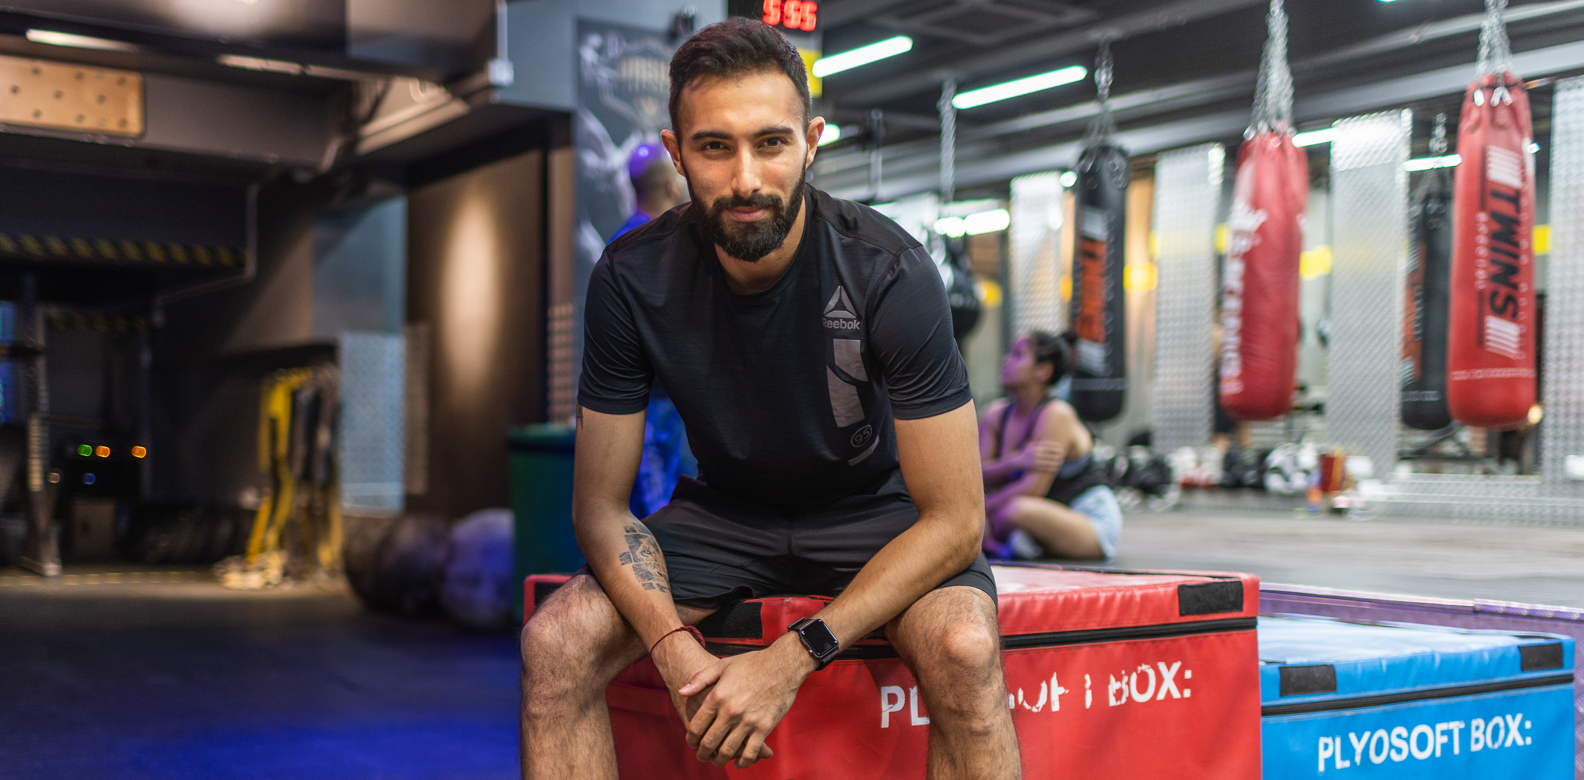 Video: Working Out With Gianni Melwani Of Hybrid Group